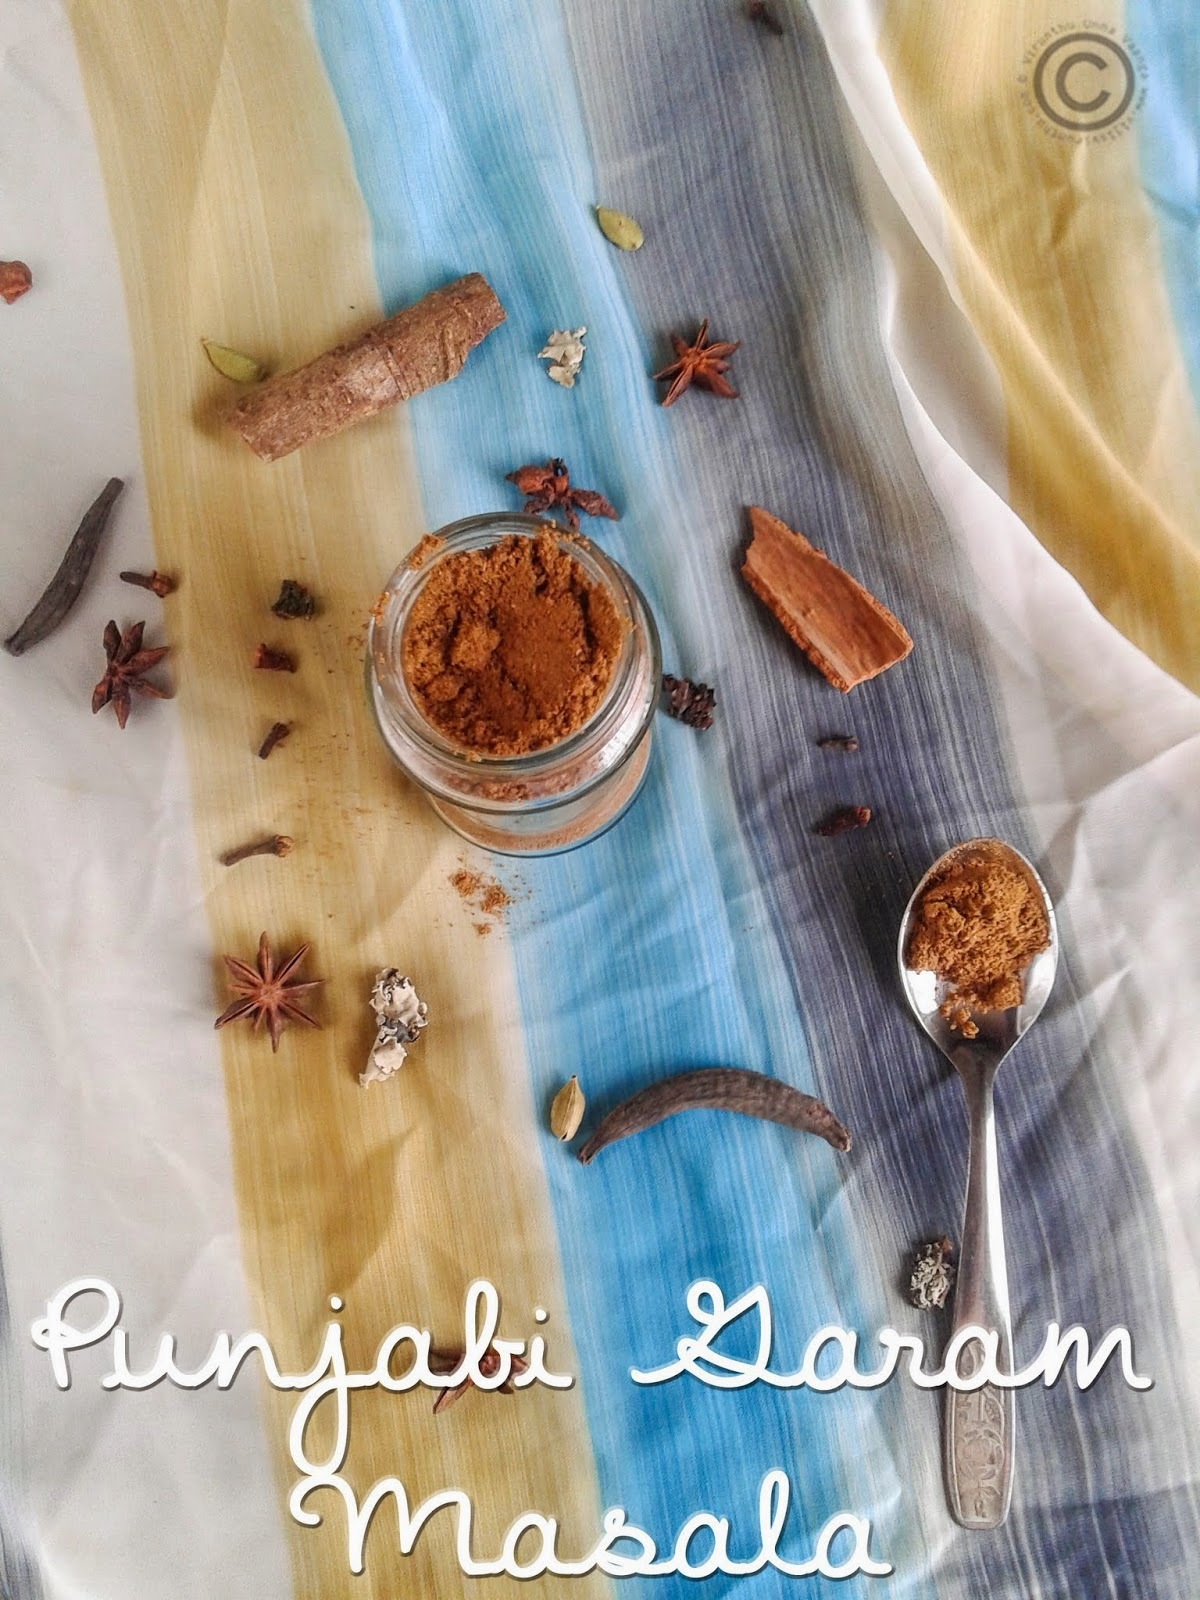 PUNJABI GARAM MASALA I HOMEMADE GARAM MASALA I BASICS OF KITCHEN